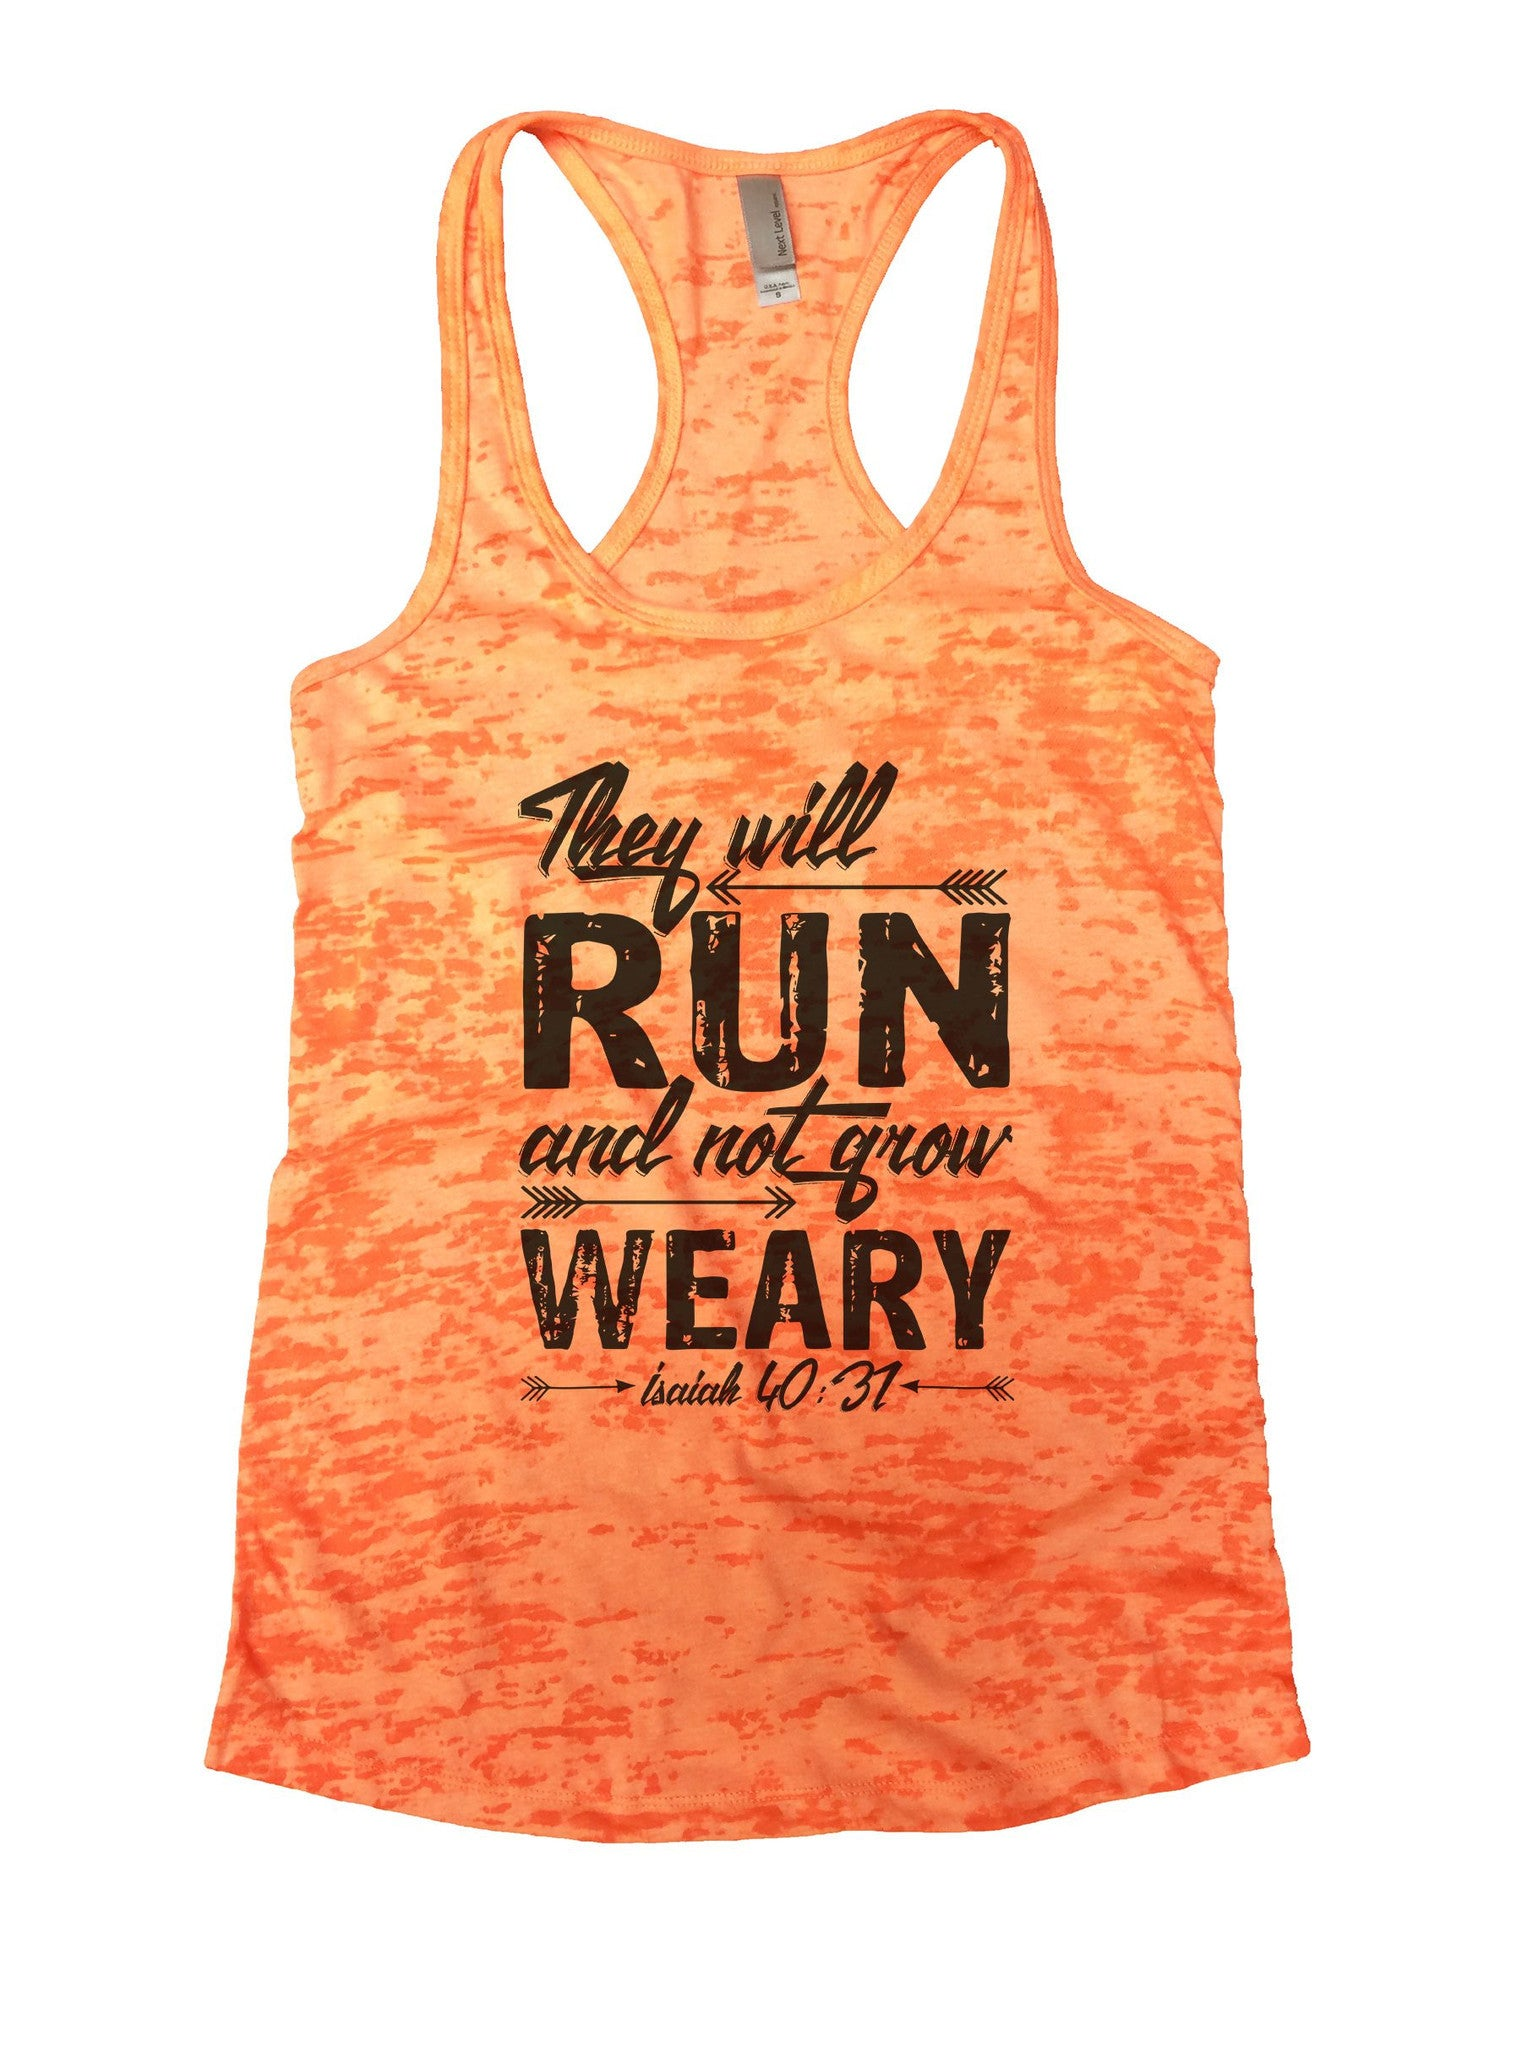 They Will Run And Not Grow Weary Isaiah 40:31 Burnout Tank Top By BurnoutTankTops.com - 1075 - Funny Shirts Tank Tops Burnouts and Triblends  - 3